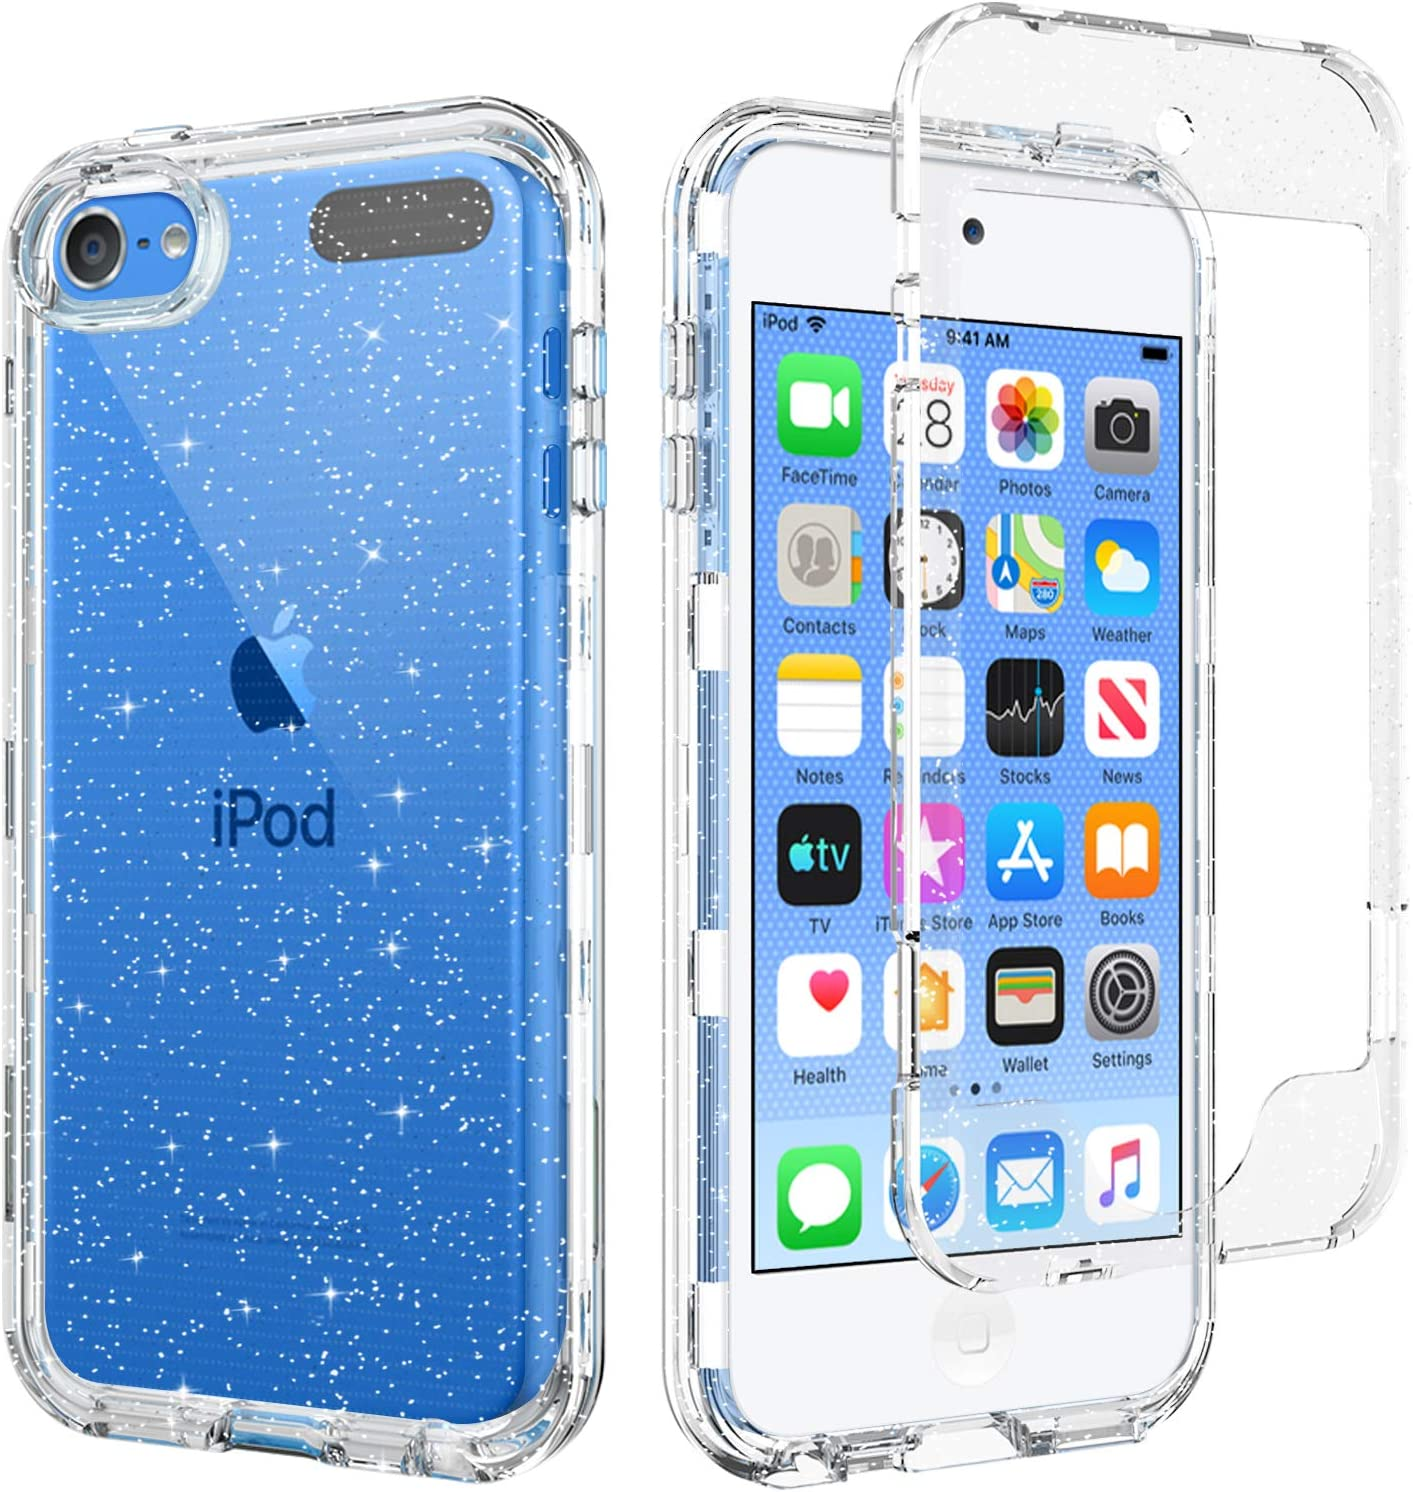 BENTOBEN iPod Touch 7th Generation Case, iPod Touch 6th / 5th Generation Case, Transparent Clear 3 in 1 Heavy Duty Rugged Full Body Shockproof Protective Phone Cover, Silver Glitter Crystal Clear